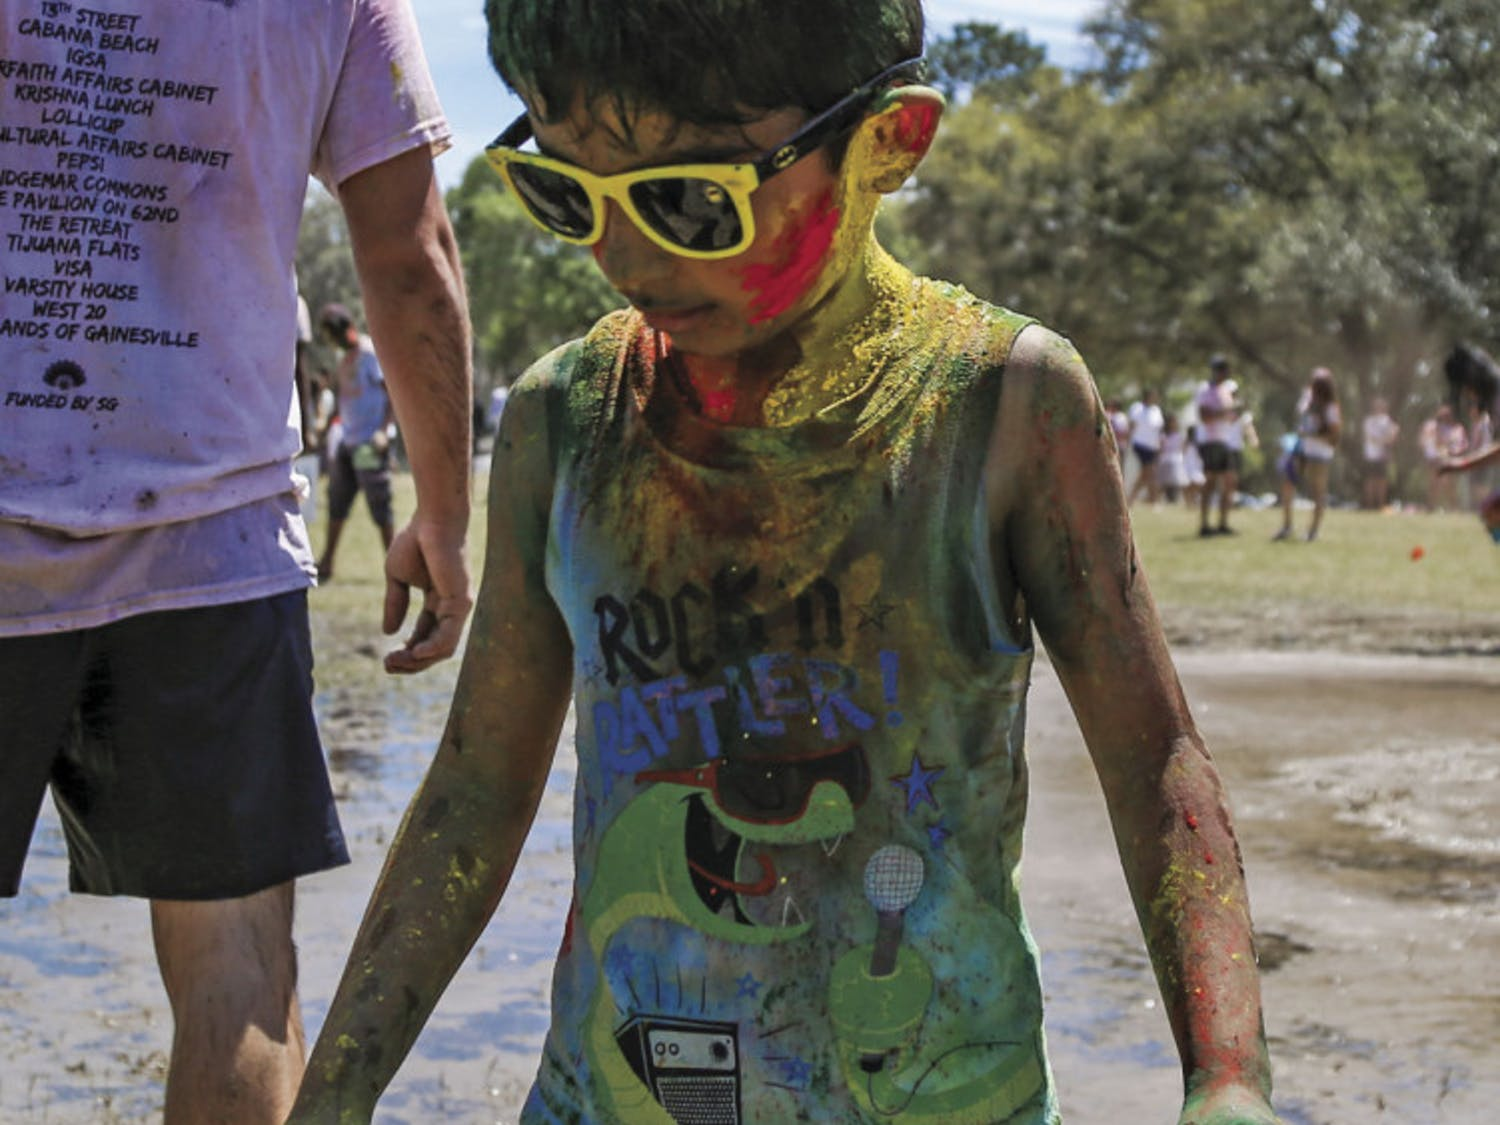 Tanish Vyas, 6, originally from India, celebrates Holi with his family on Sunday afternoon during the UF Holi Festival of Colors, organized by the Indian Student Association and Student Government.